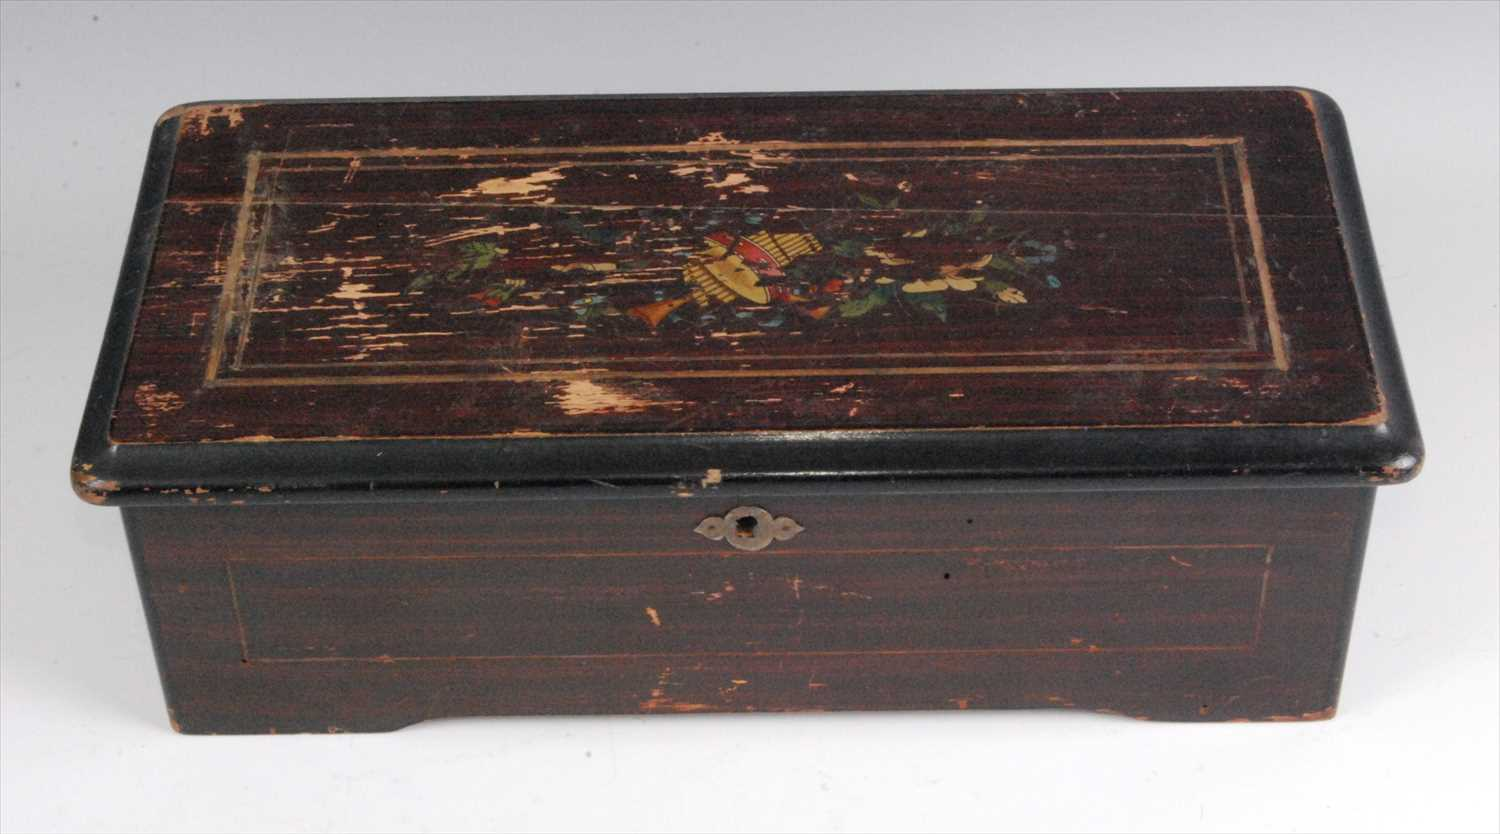 Lot 503-A late 19th century simulated rosewood cased music box